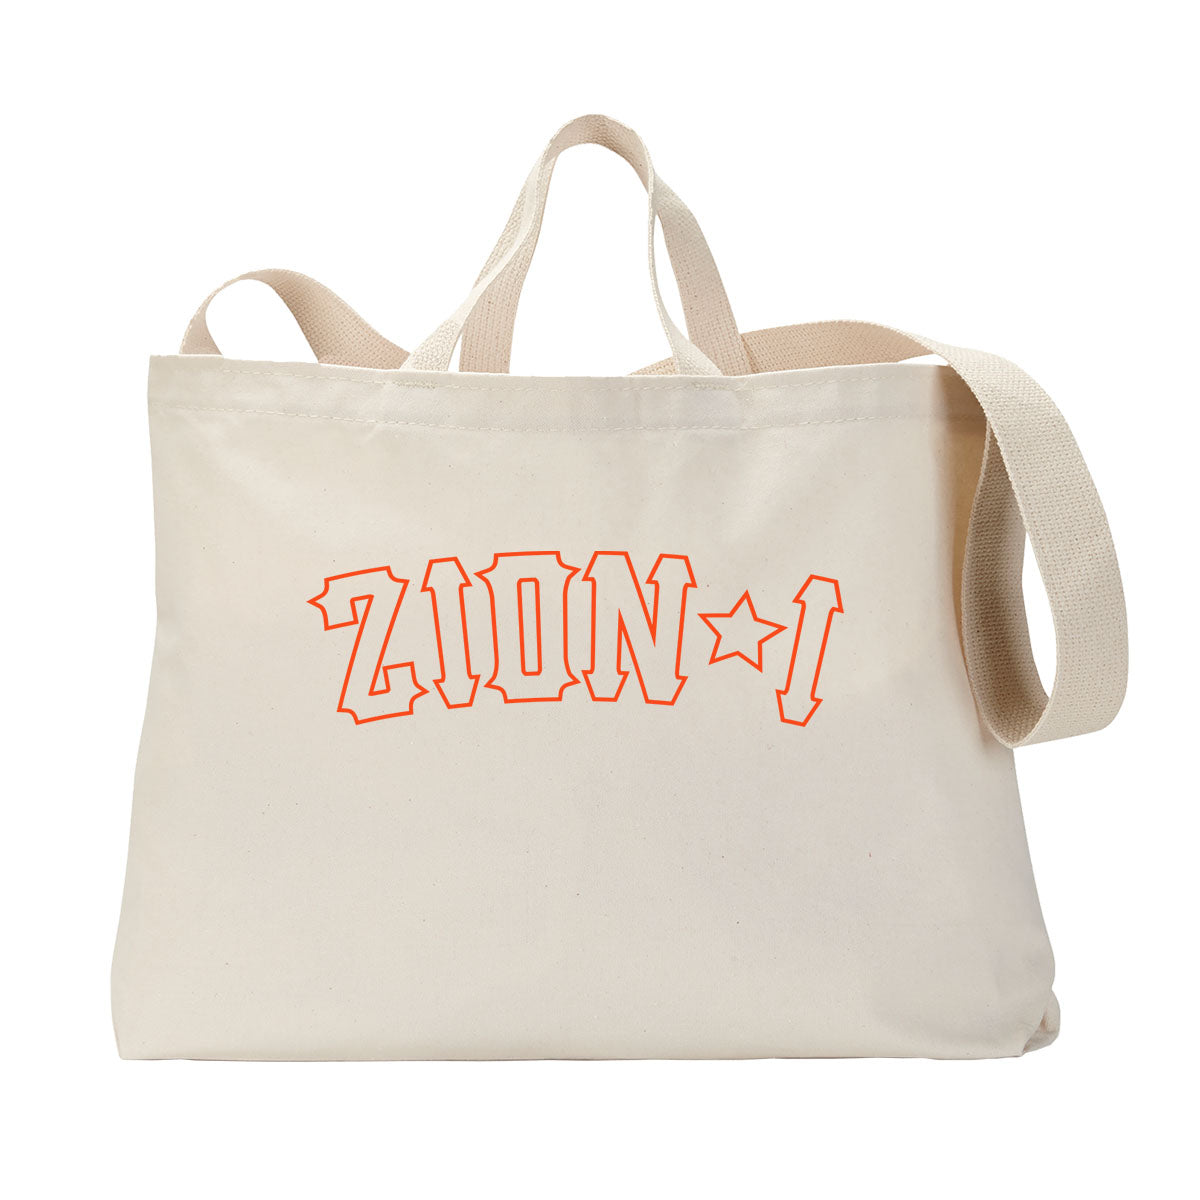 Giants Tote Bag